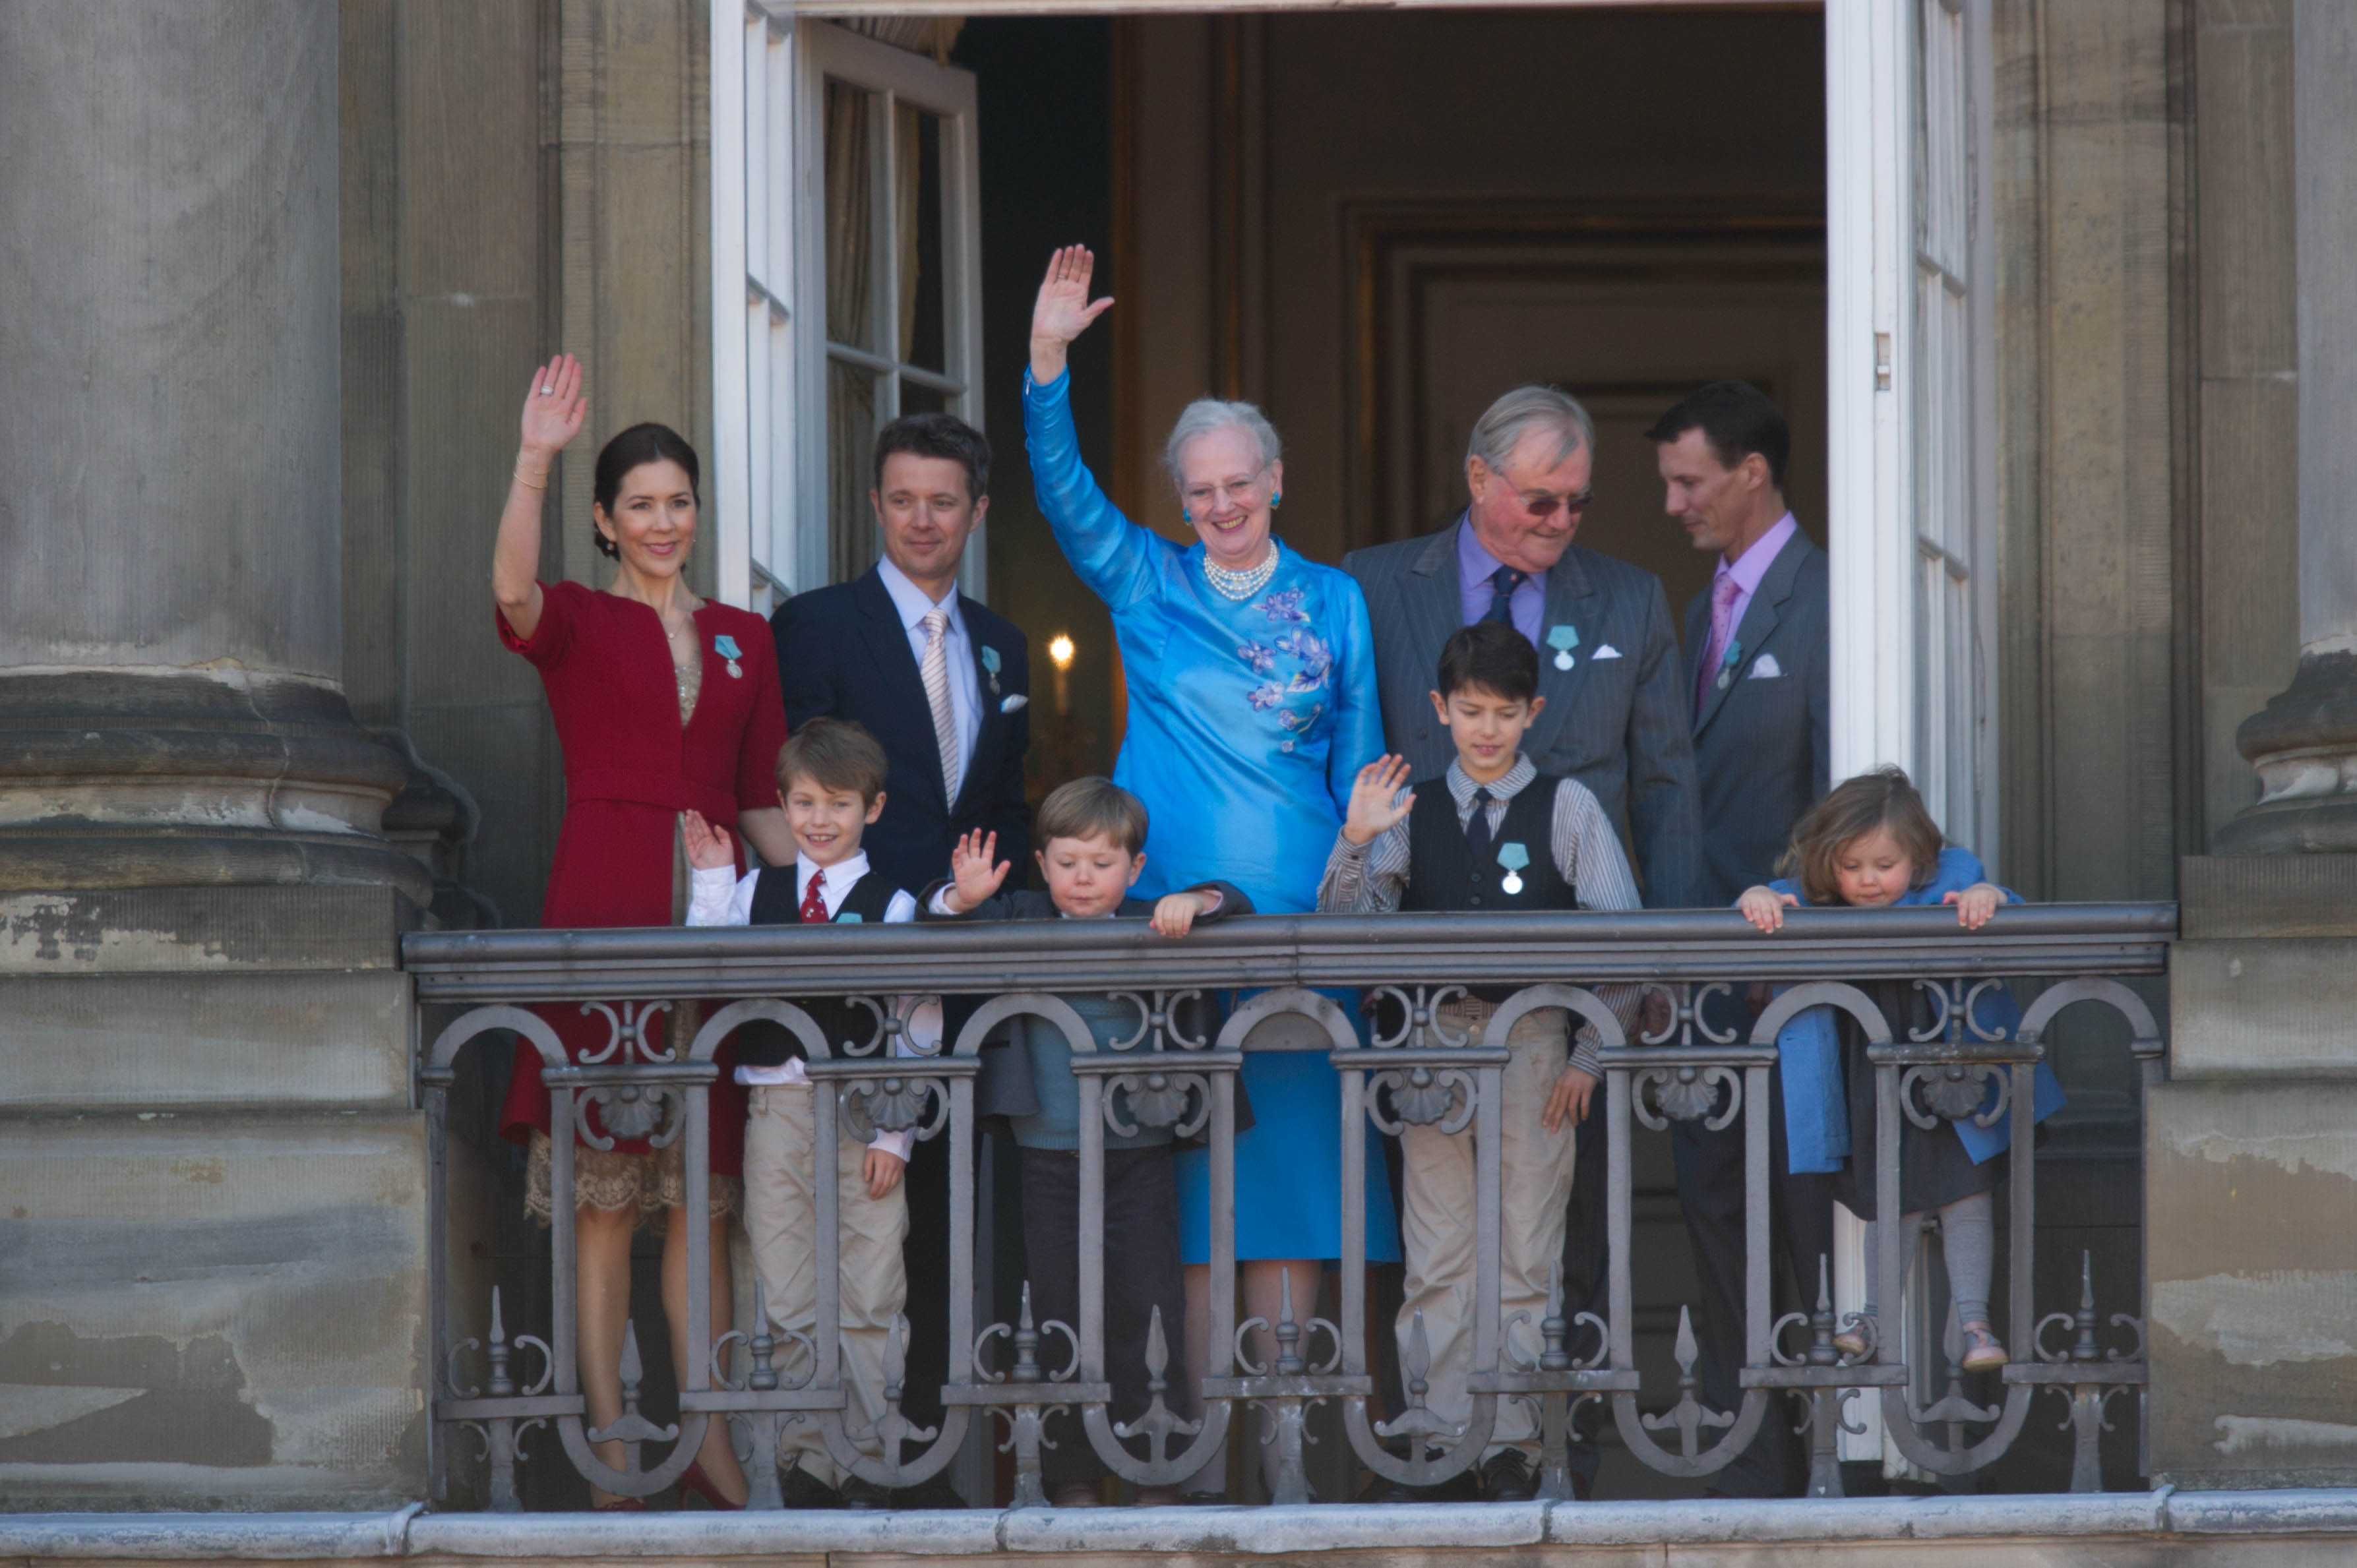 The Queen surrounded by her family waving to crowds on her 70th birthday pn April 16, 2010. From left to right: the Crown Princess, Prince Felix, the Crown Prince, Prince Christian, the Queen, Prince Nikolai, Prince Consort Henrik, Prince Joachim and Princess Isabella.